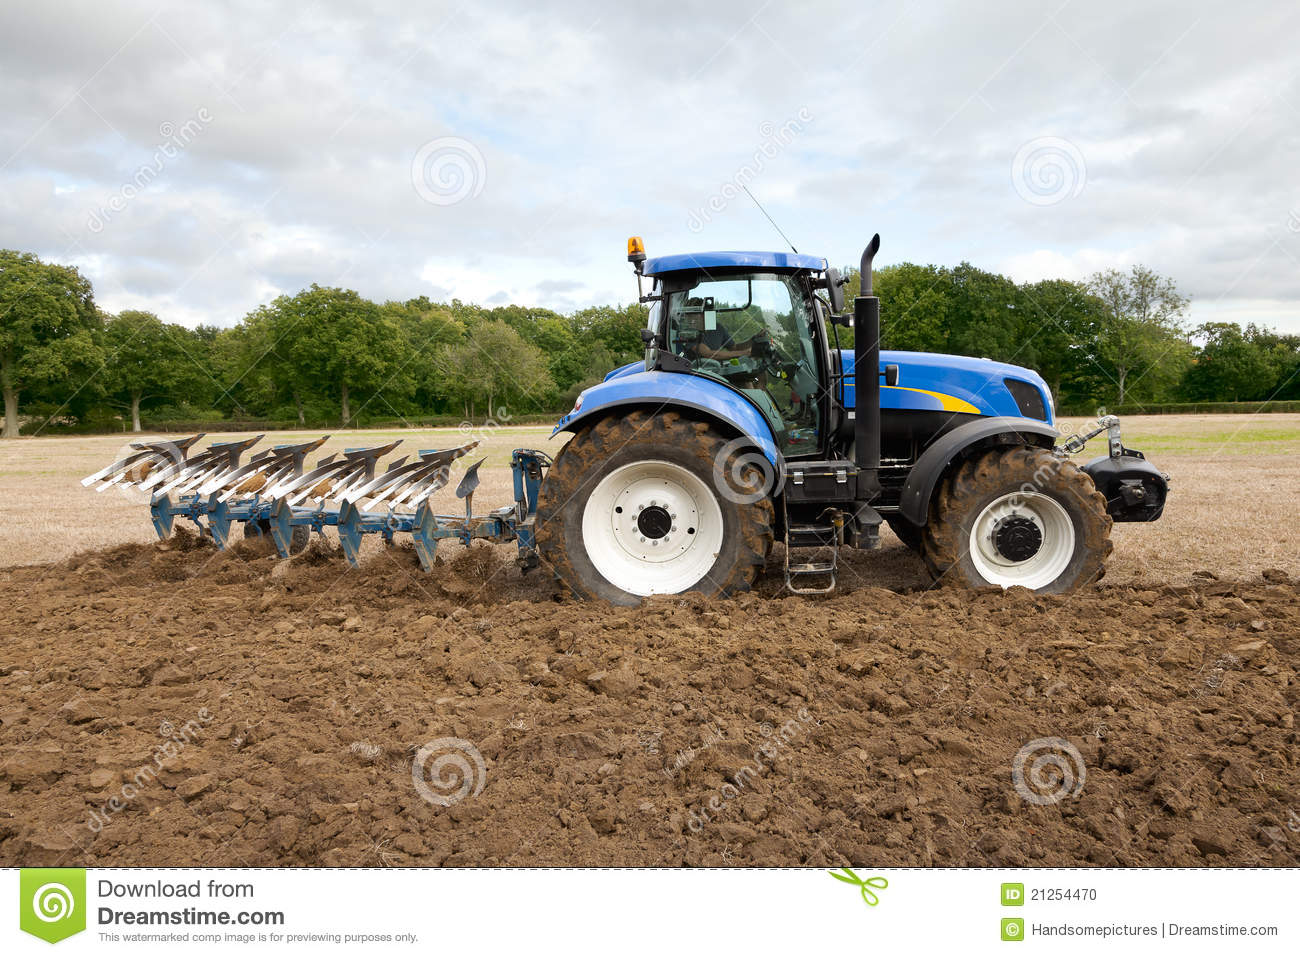 Tractor Ploughing Field Stock Photo - Image: 21254470